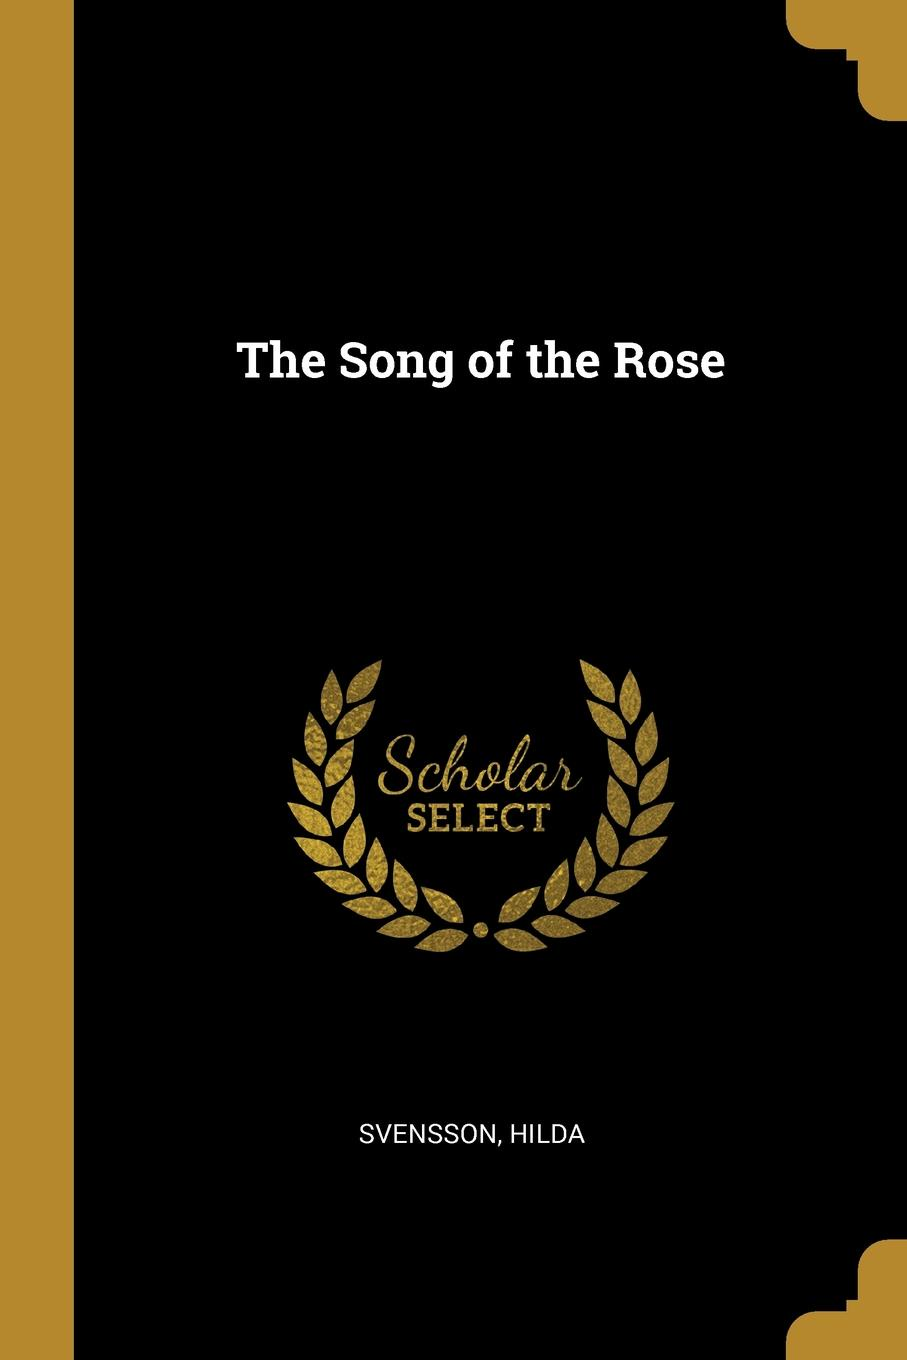 Svensson Hilda. The Song of the Rose